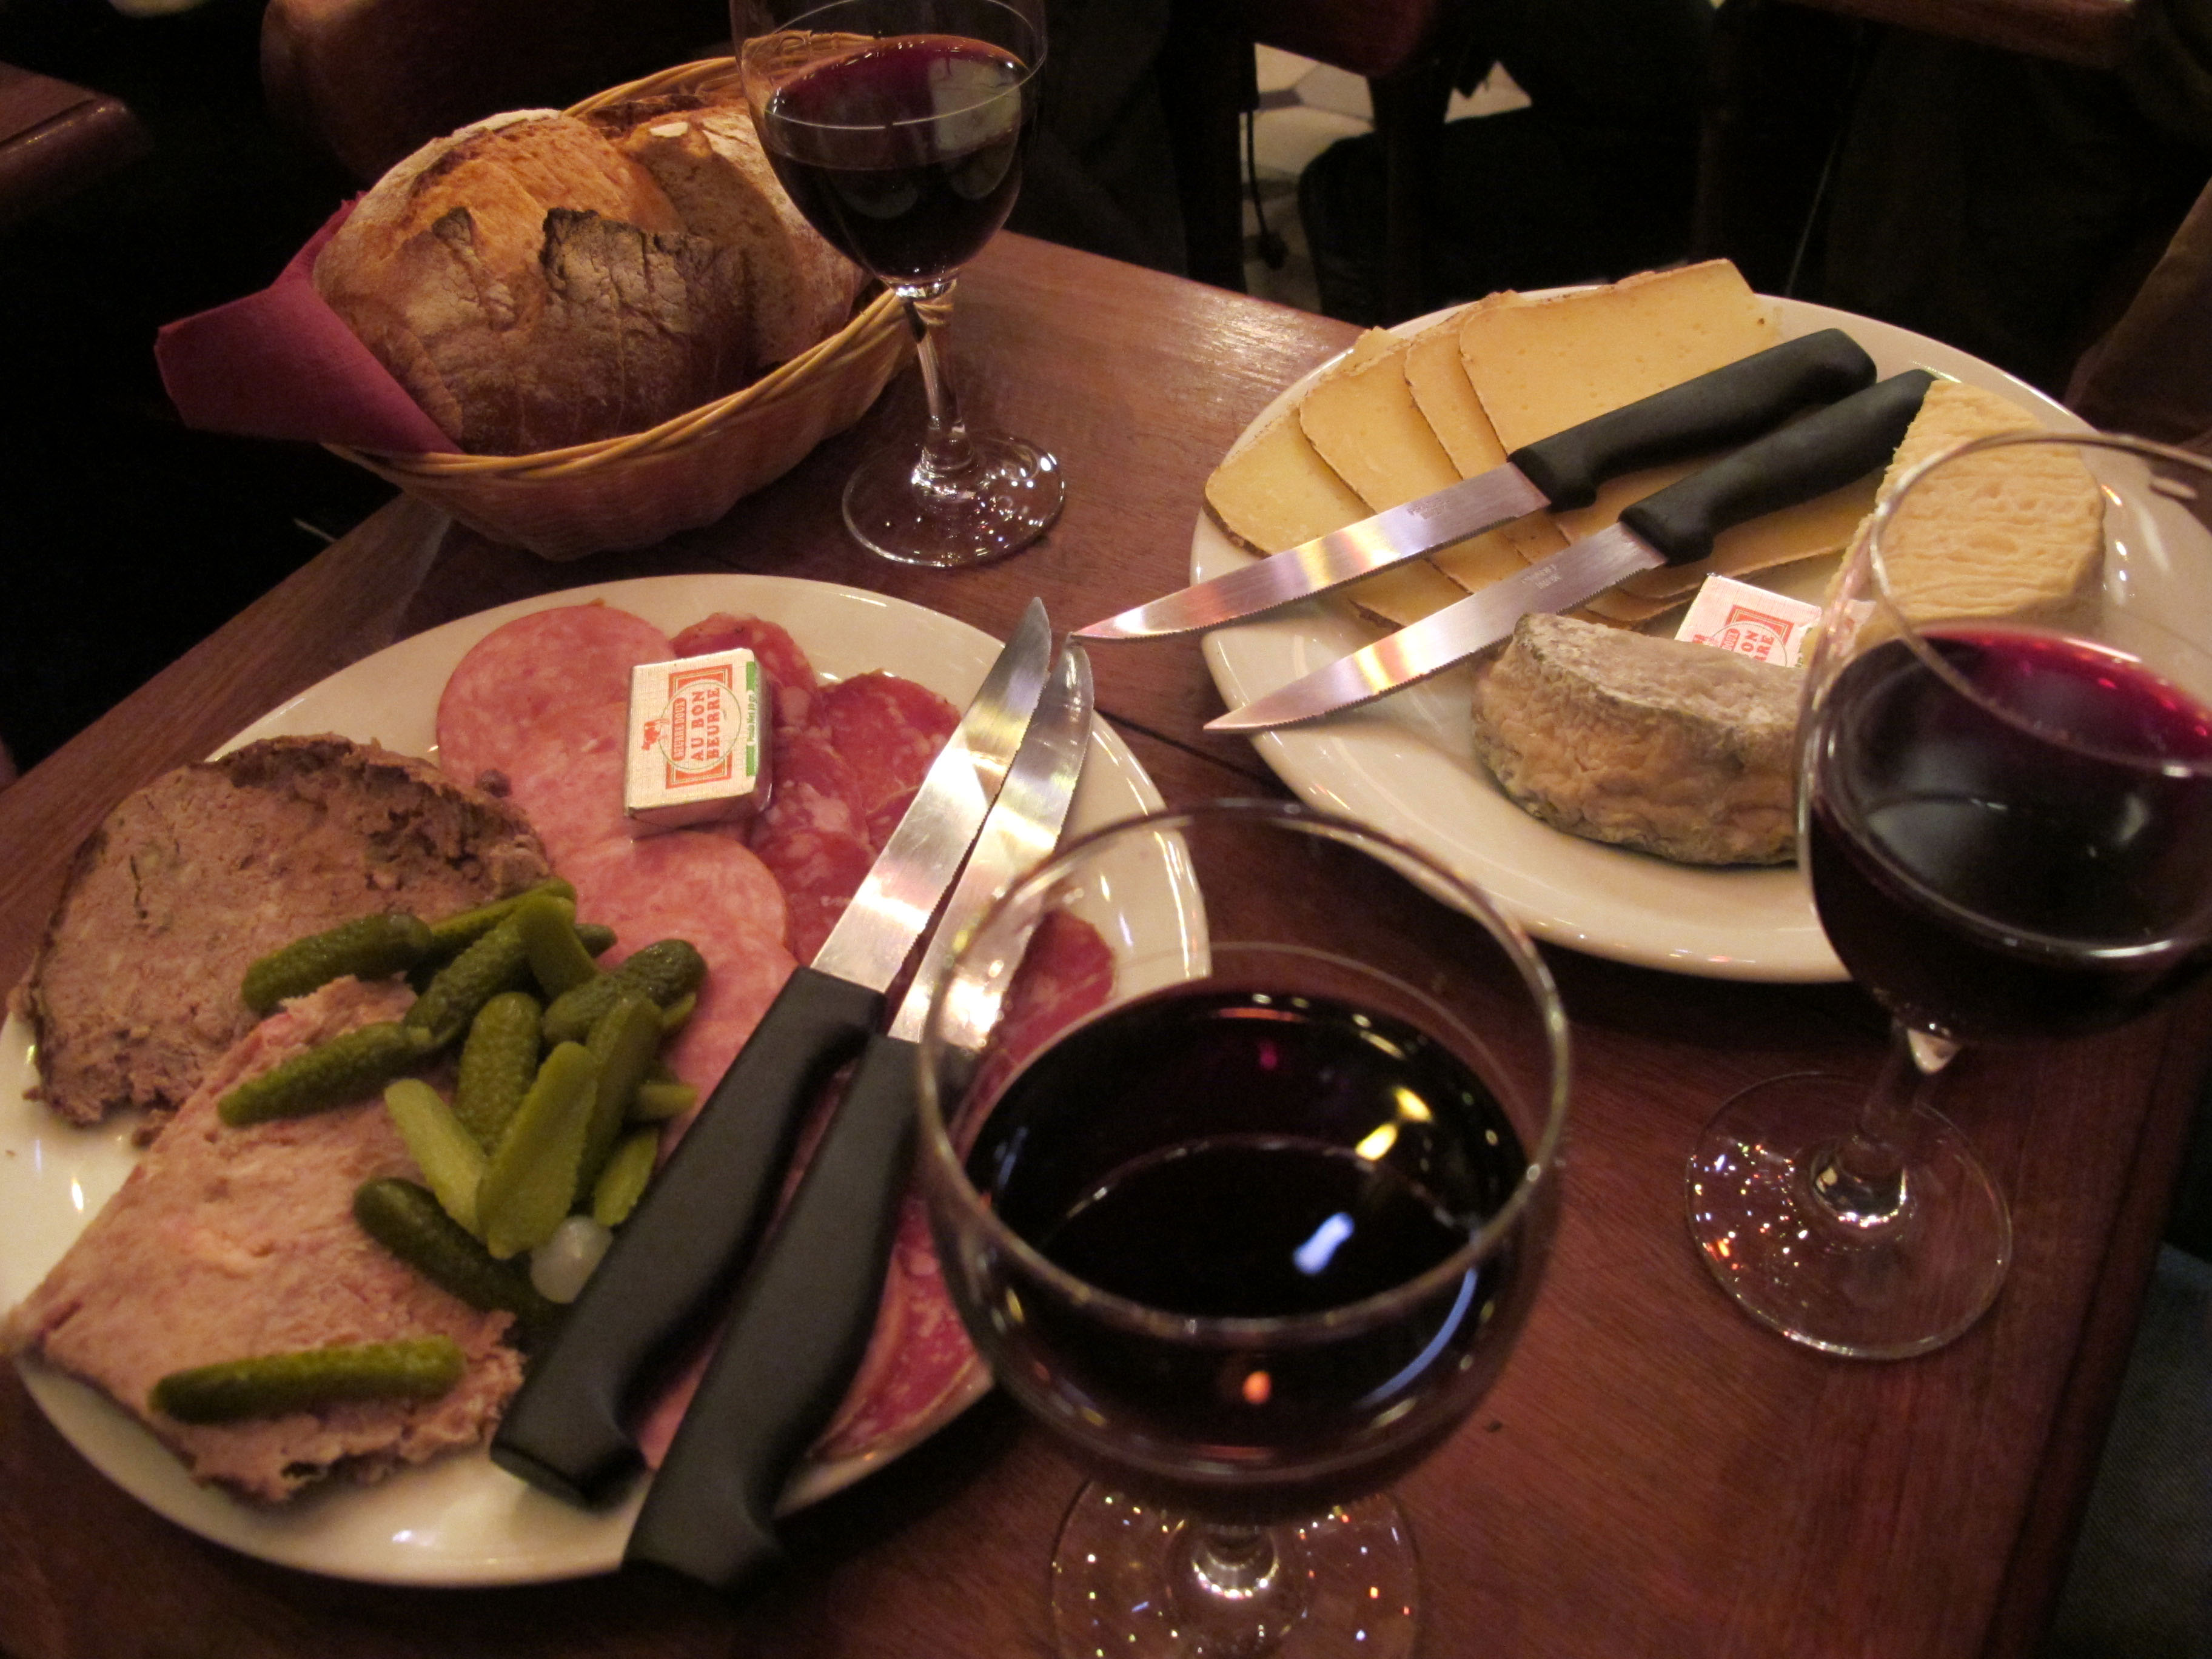 Cheese and charcuterie at Le Baron Rouge, Paris